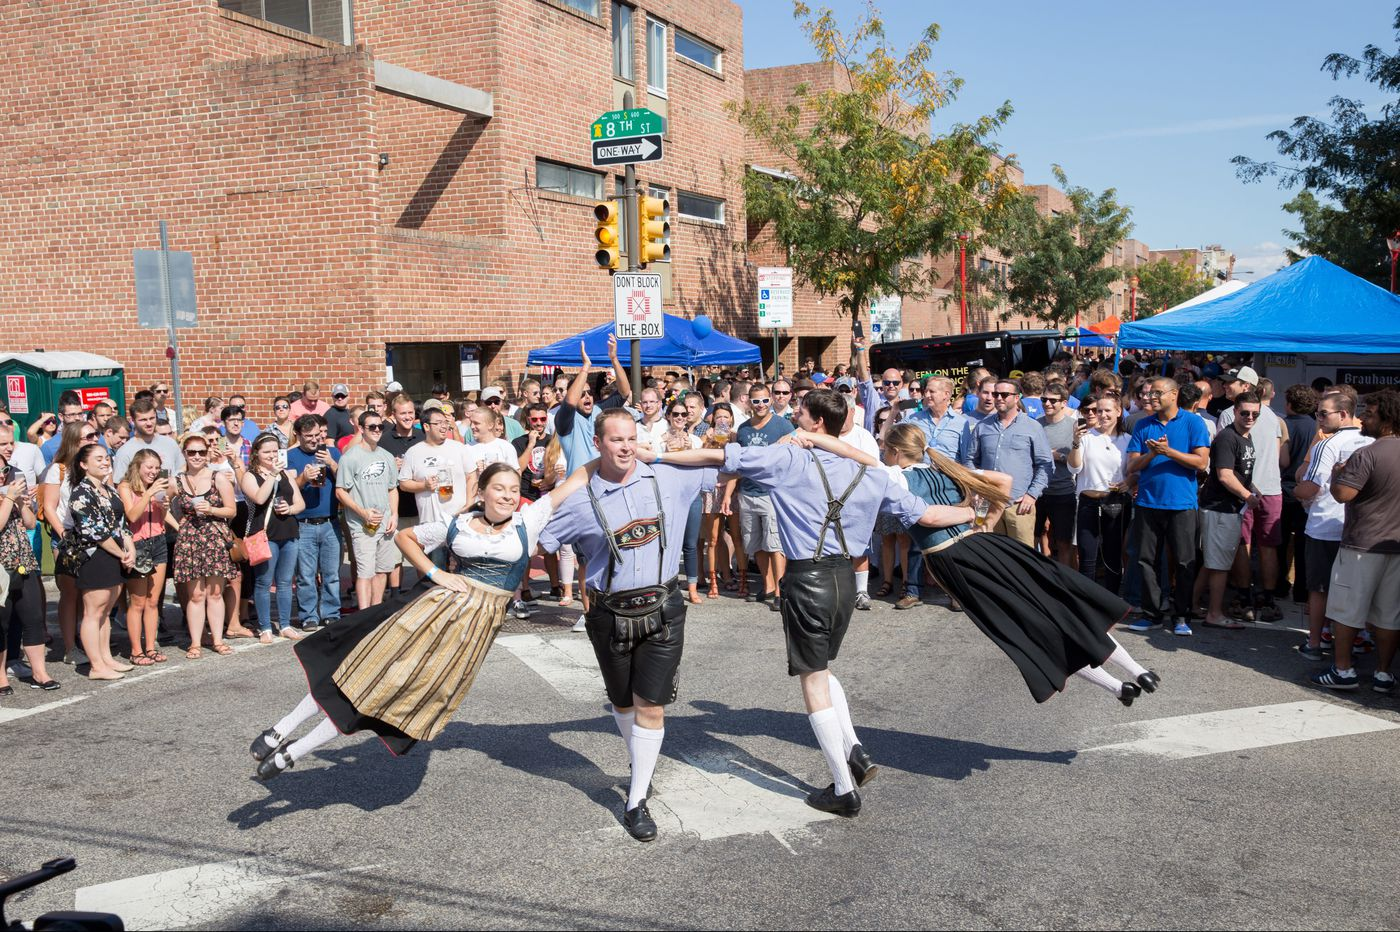 South Street Oktoberfest, New Jersey Horror Con, and other events, Sept. 21-27